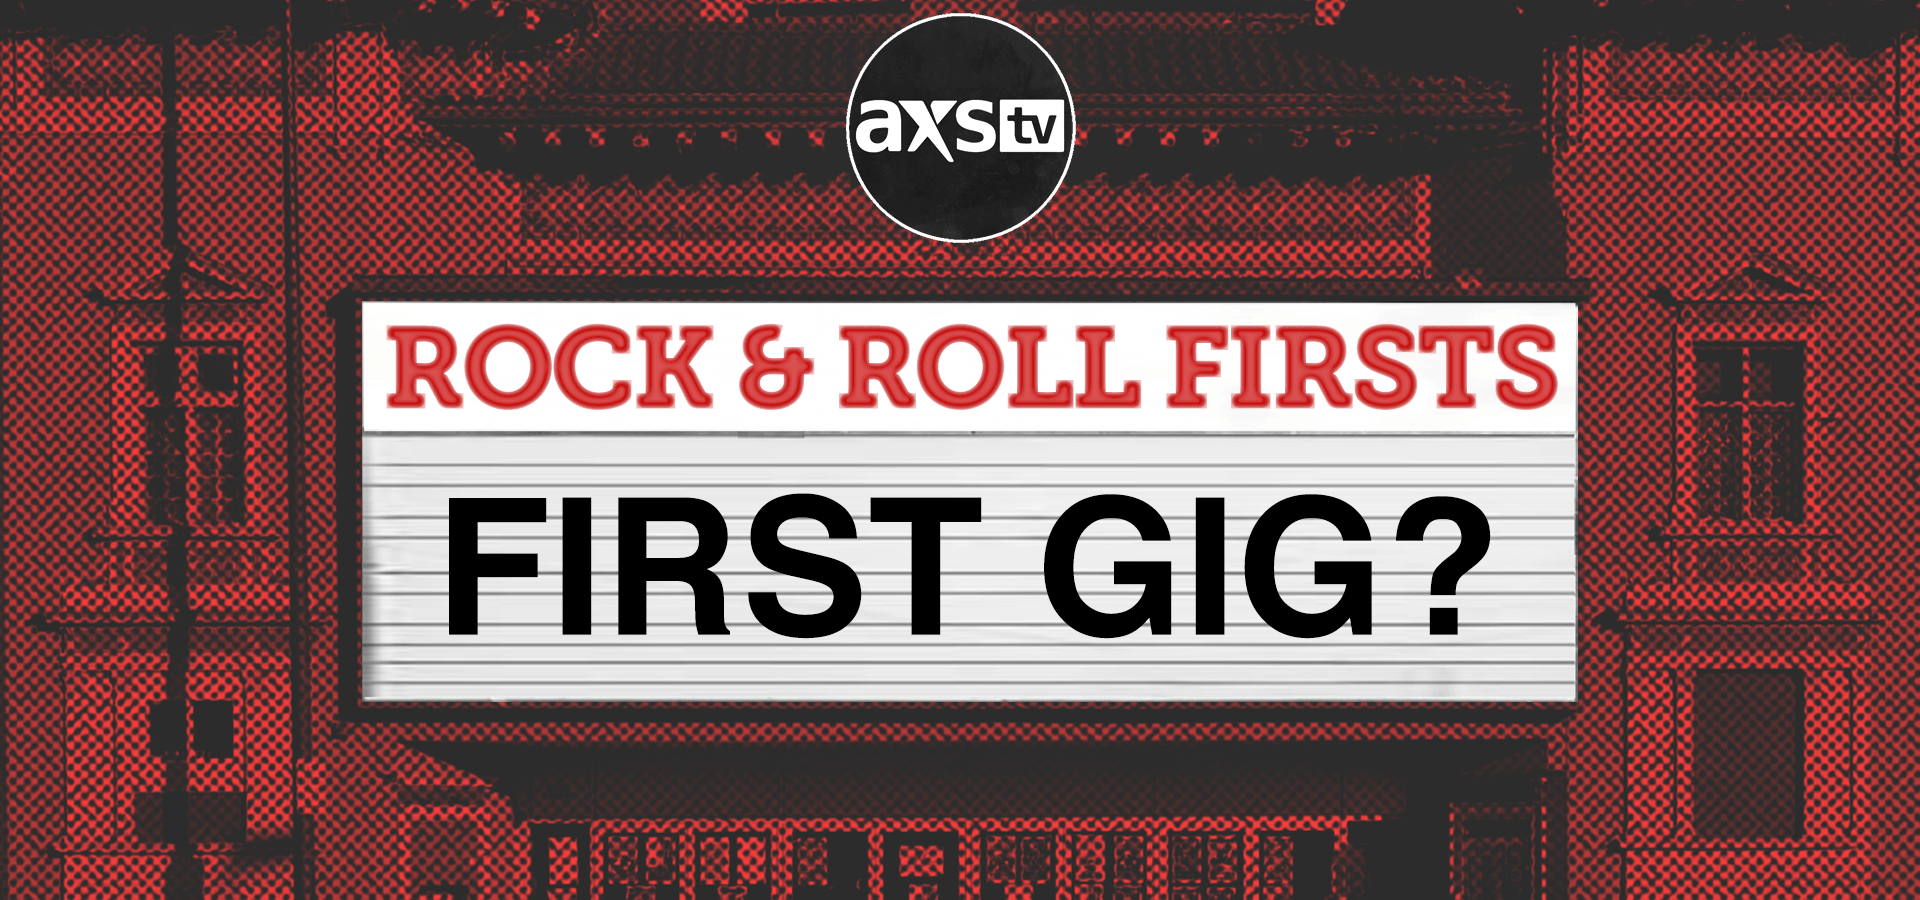 Rock & Roll Firsts